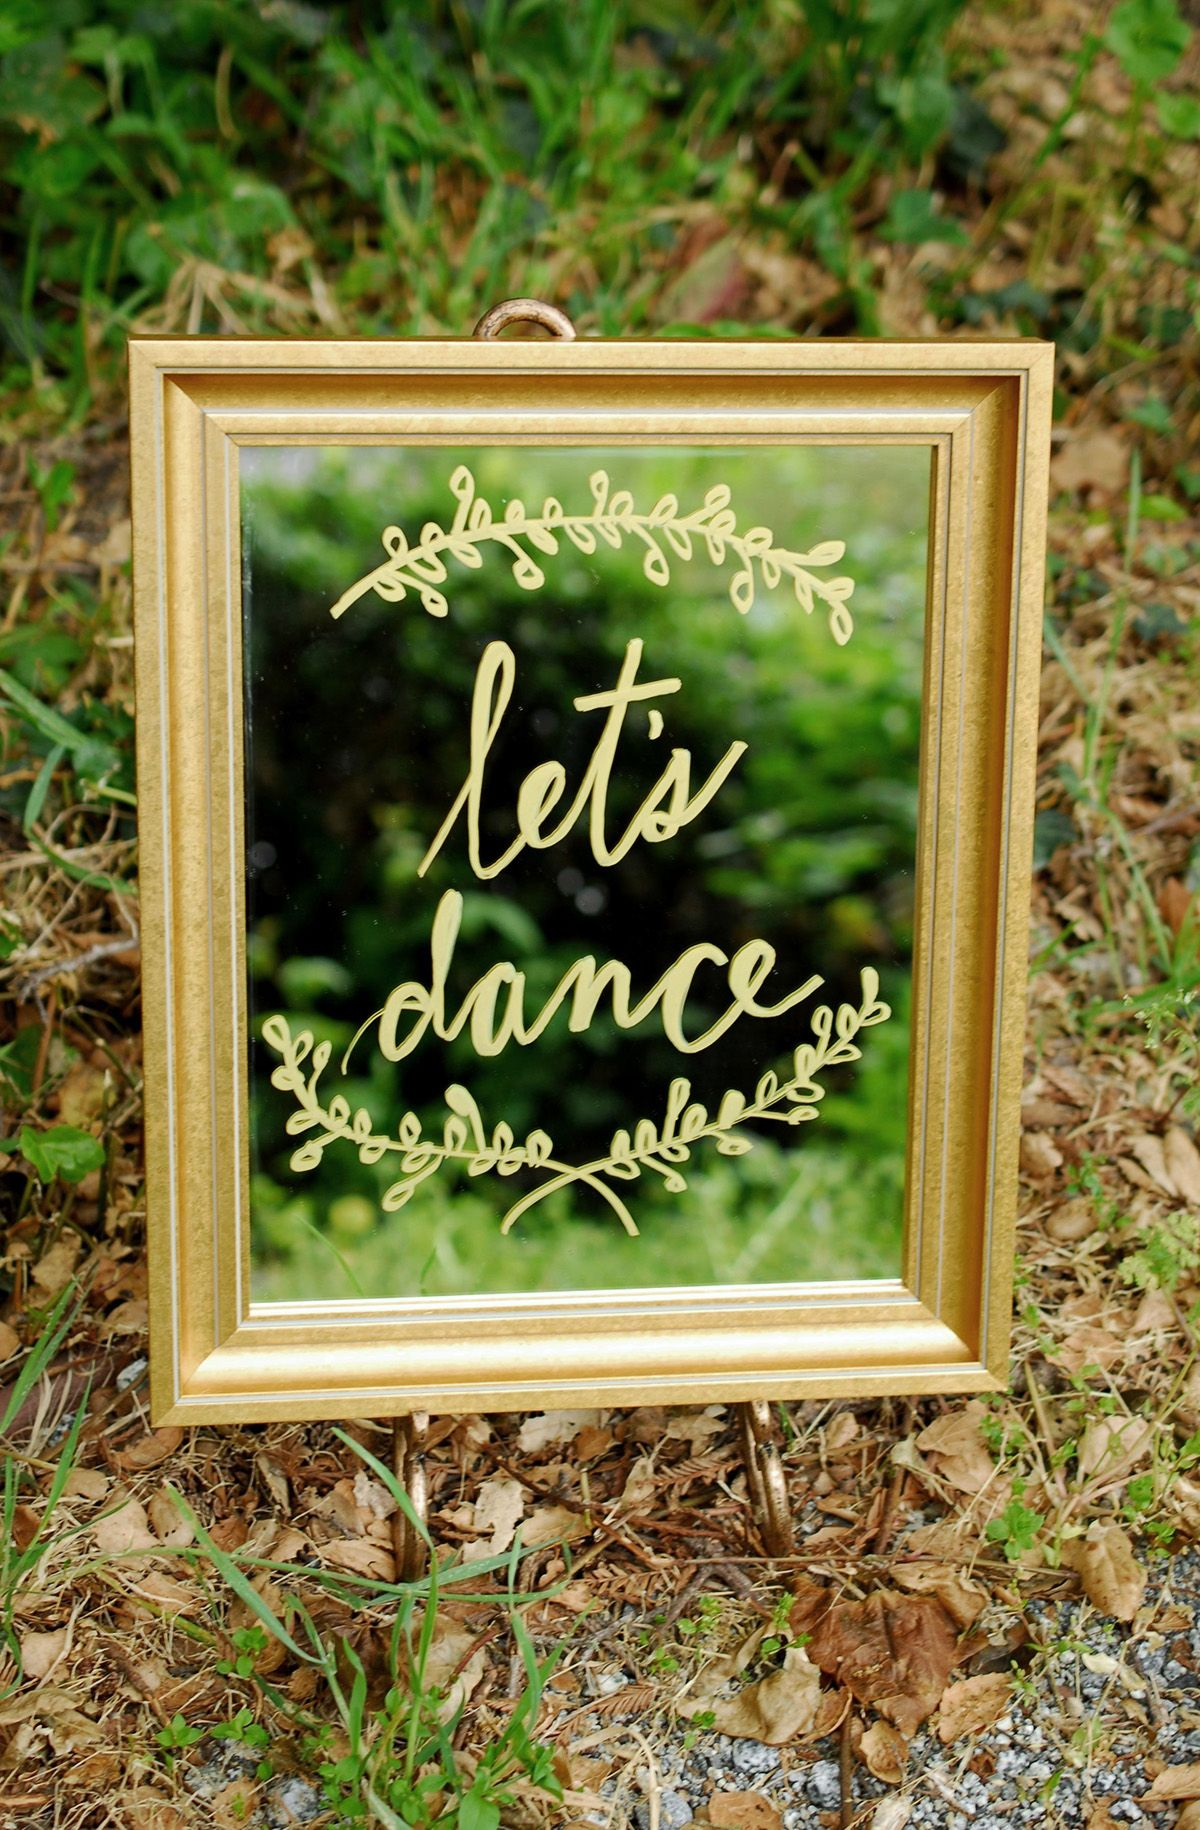 Write On Framed Mirrors In Metallic Chalk Marker For Unique Party Or Wedding Signage